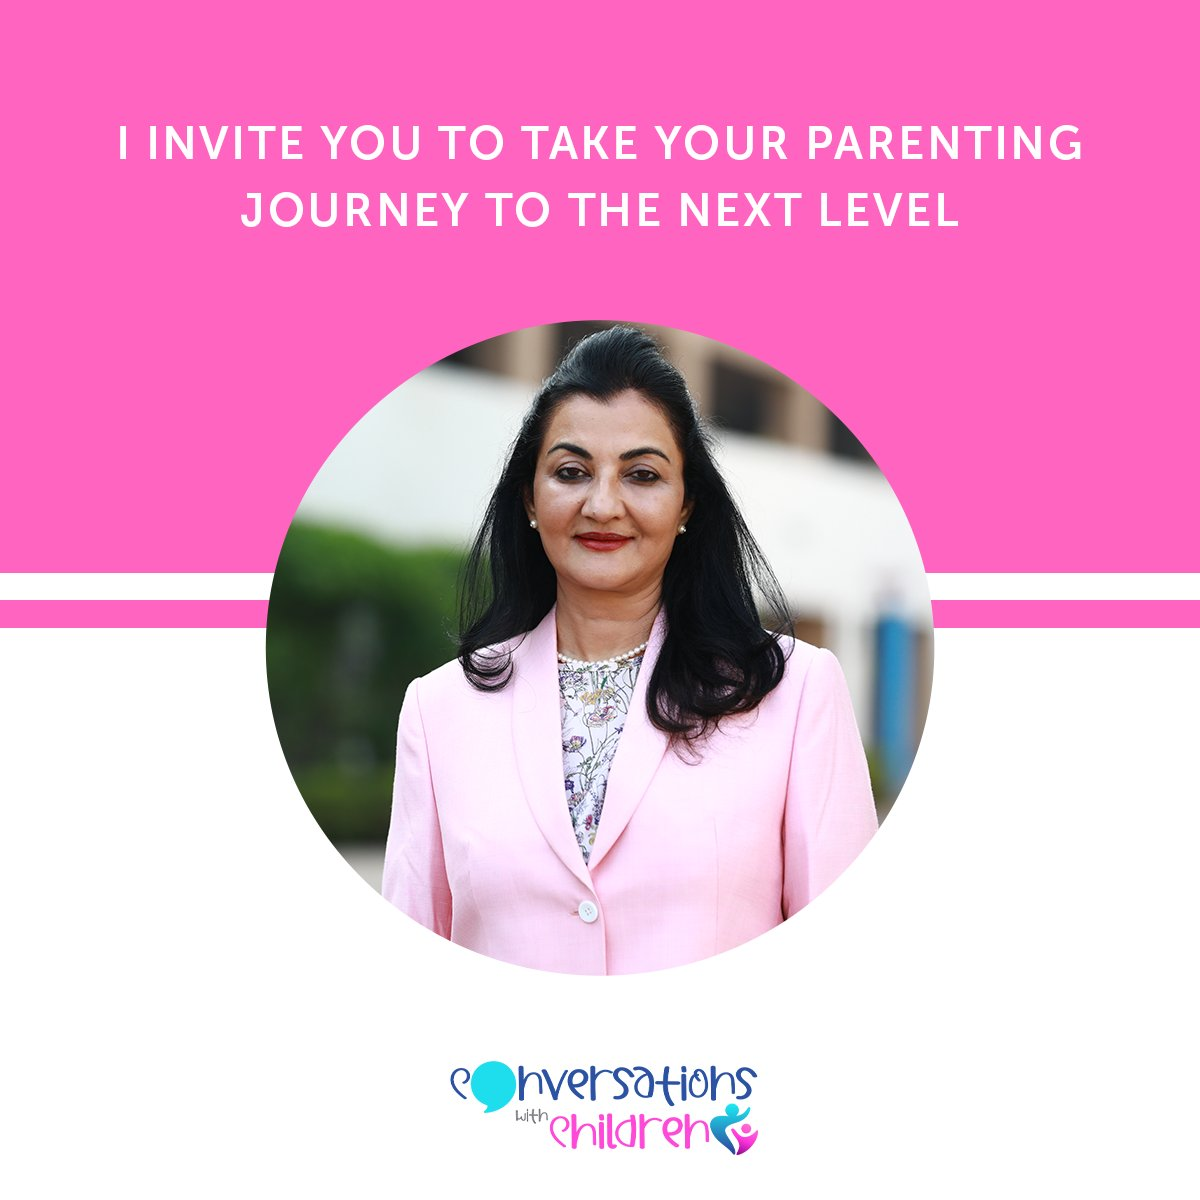 This course is based on practical experiences that makes it easy for parents to relate and introduce these habits in the day-to-day exchanges and discussions. To learn more https://t.co/Z1ajAUcJNP  #elearning #parenting #children #newparents #newmom #understandingkids #Parenthood https://t.co/K3Y4WUkpth